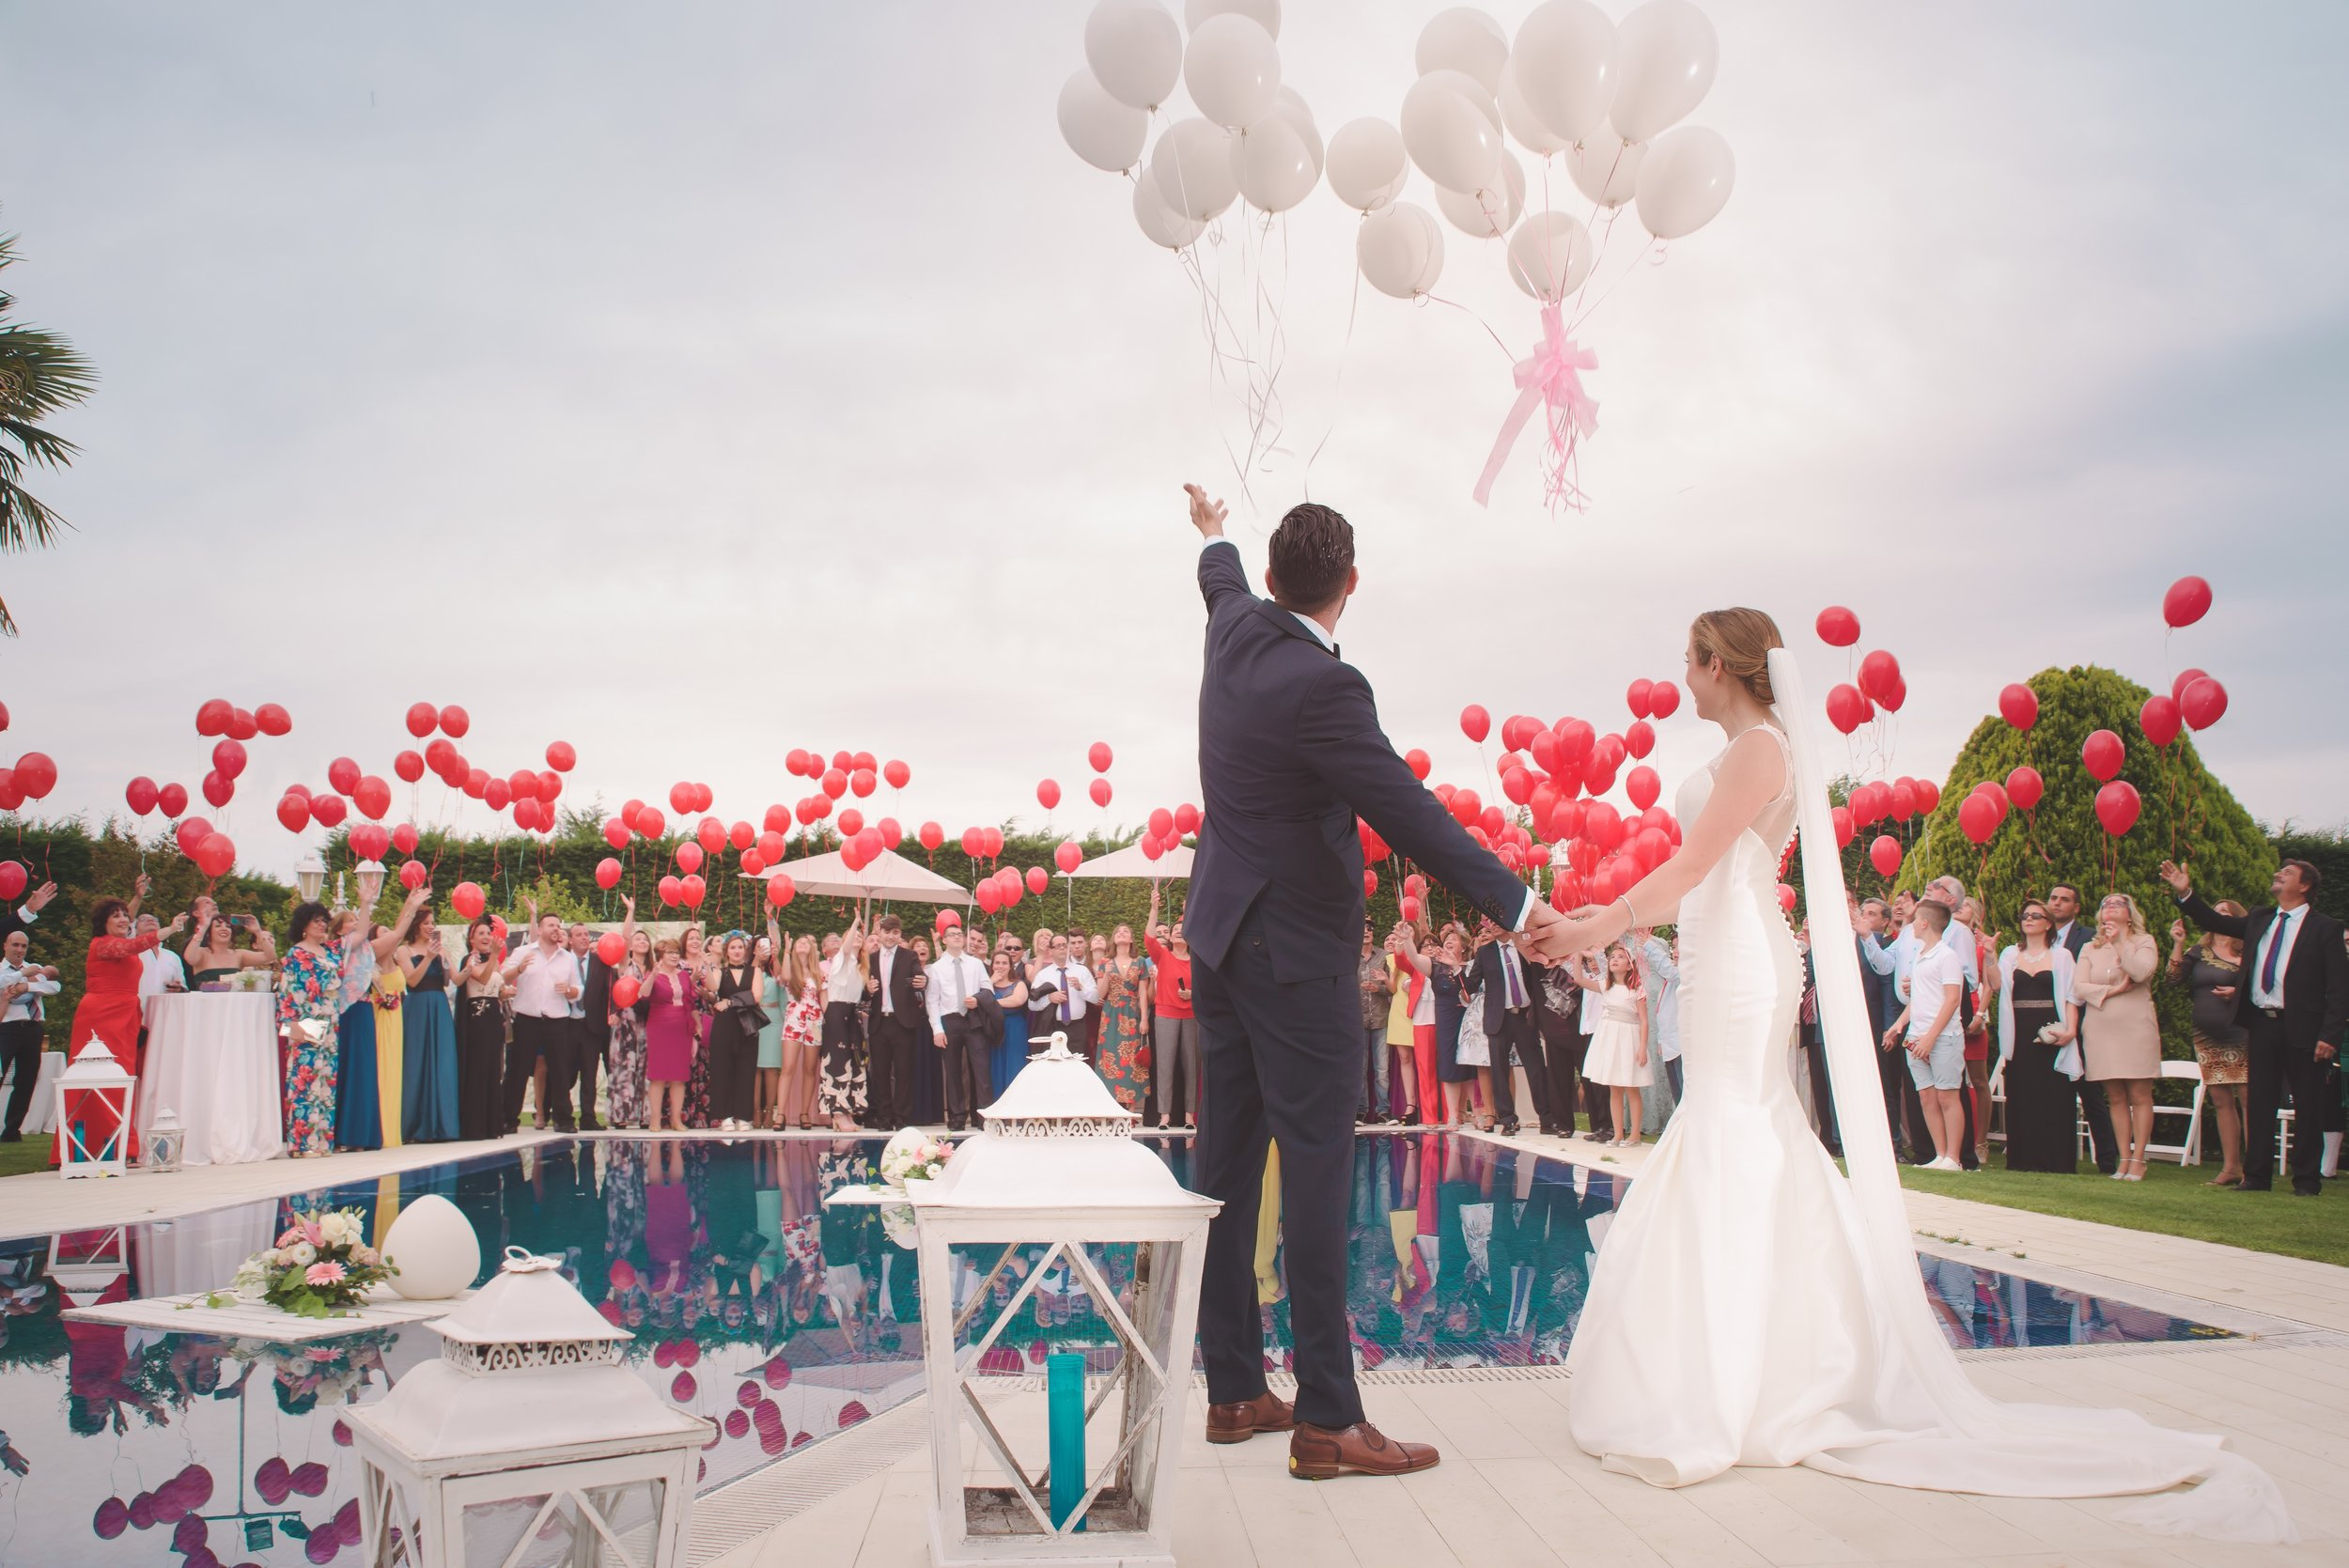 Guest Relations   From invitations to sparkler send off's, we